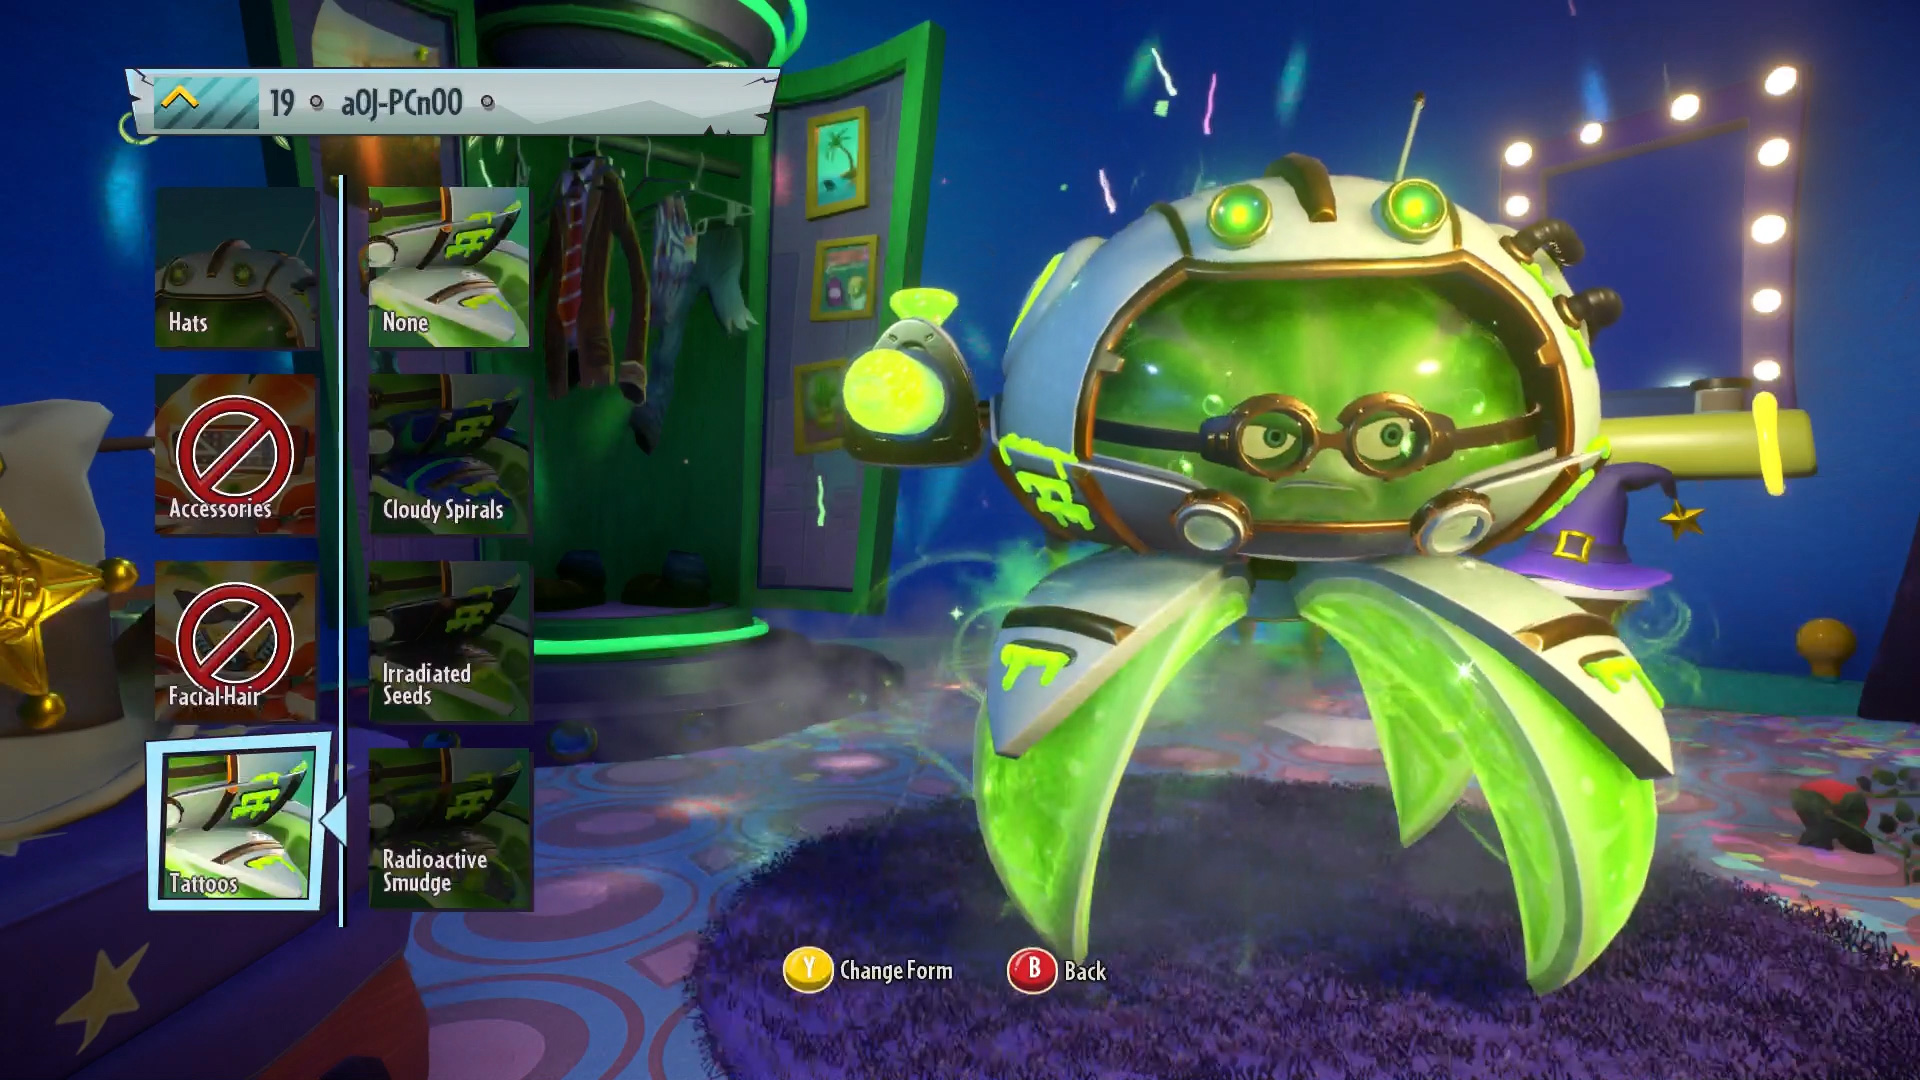 Citron from plants vs zombies garden warfare 2 plants vs zombies - Image Toxic Citron In Customize Jpg Plants Vs Zombies Wiki Fandom Powered By Wikia